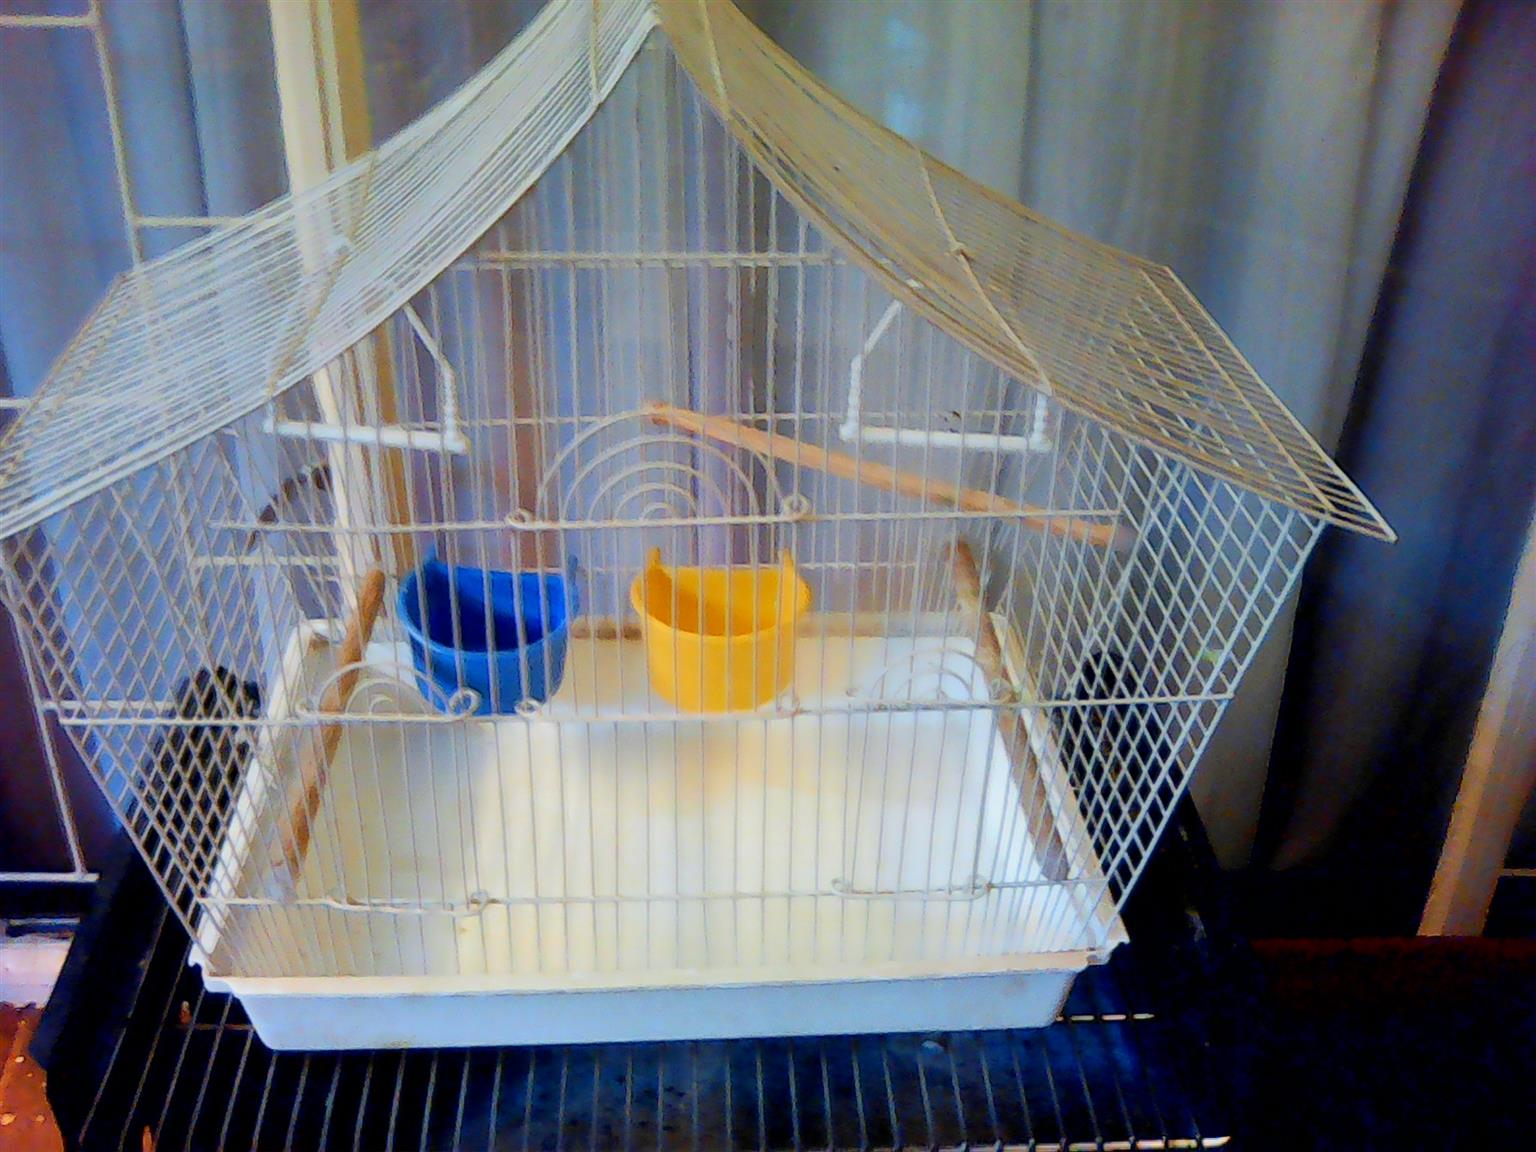 1 x bird cages for sale - urgent